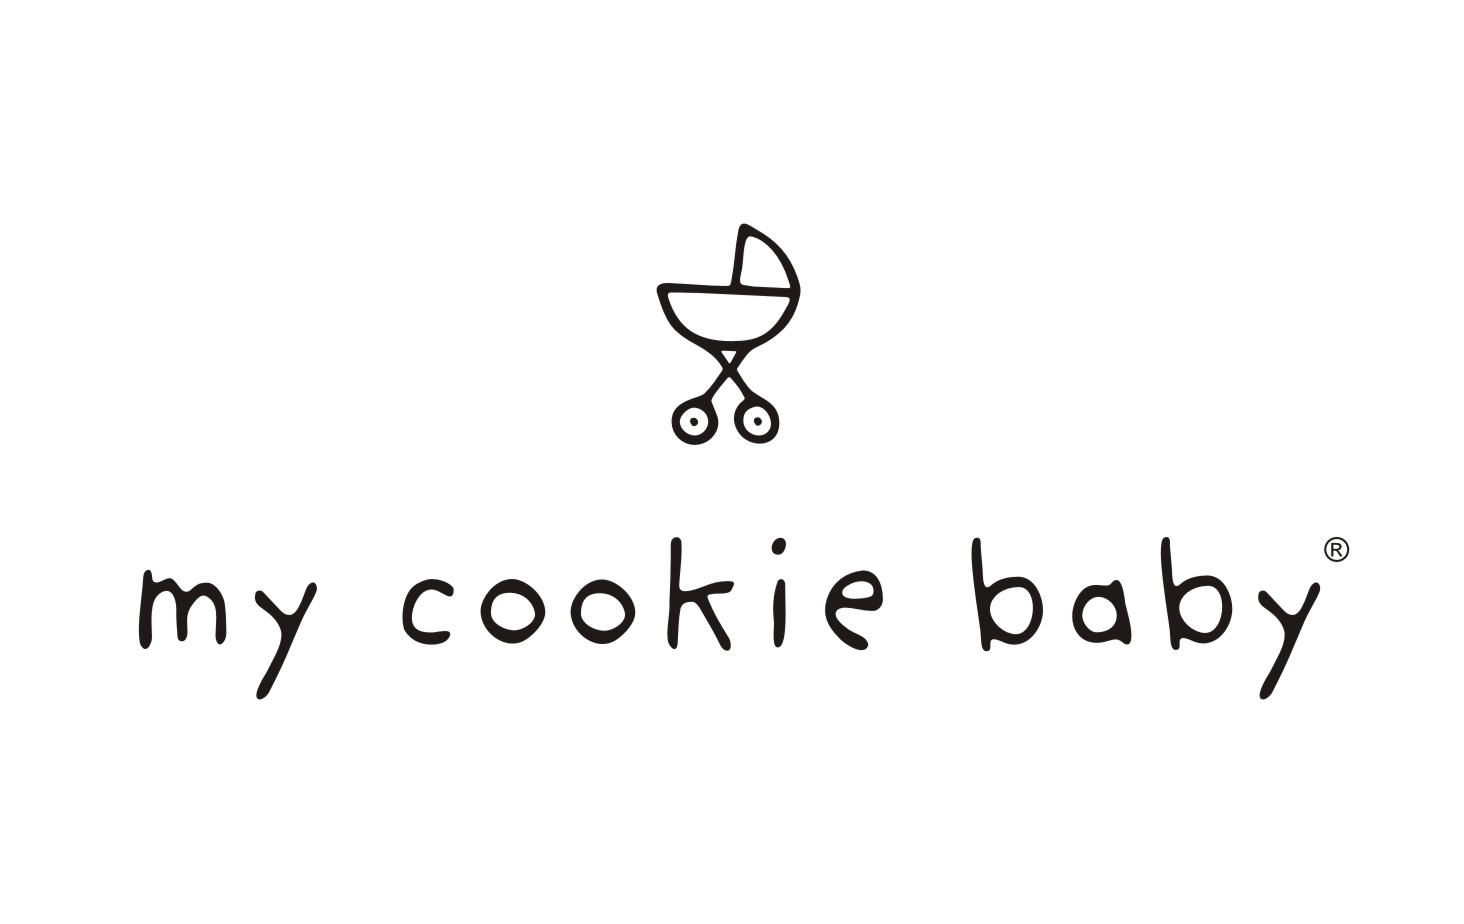 my cookie baby